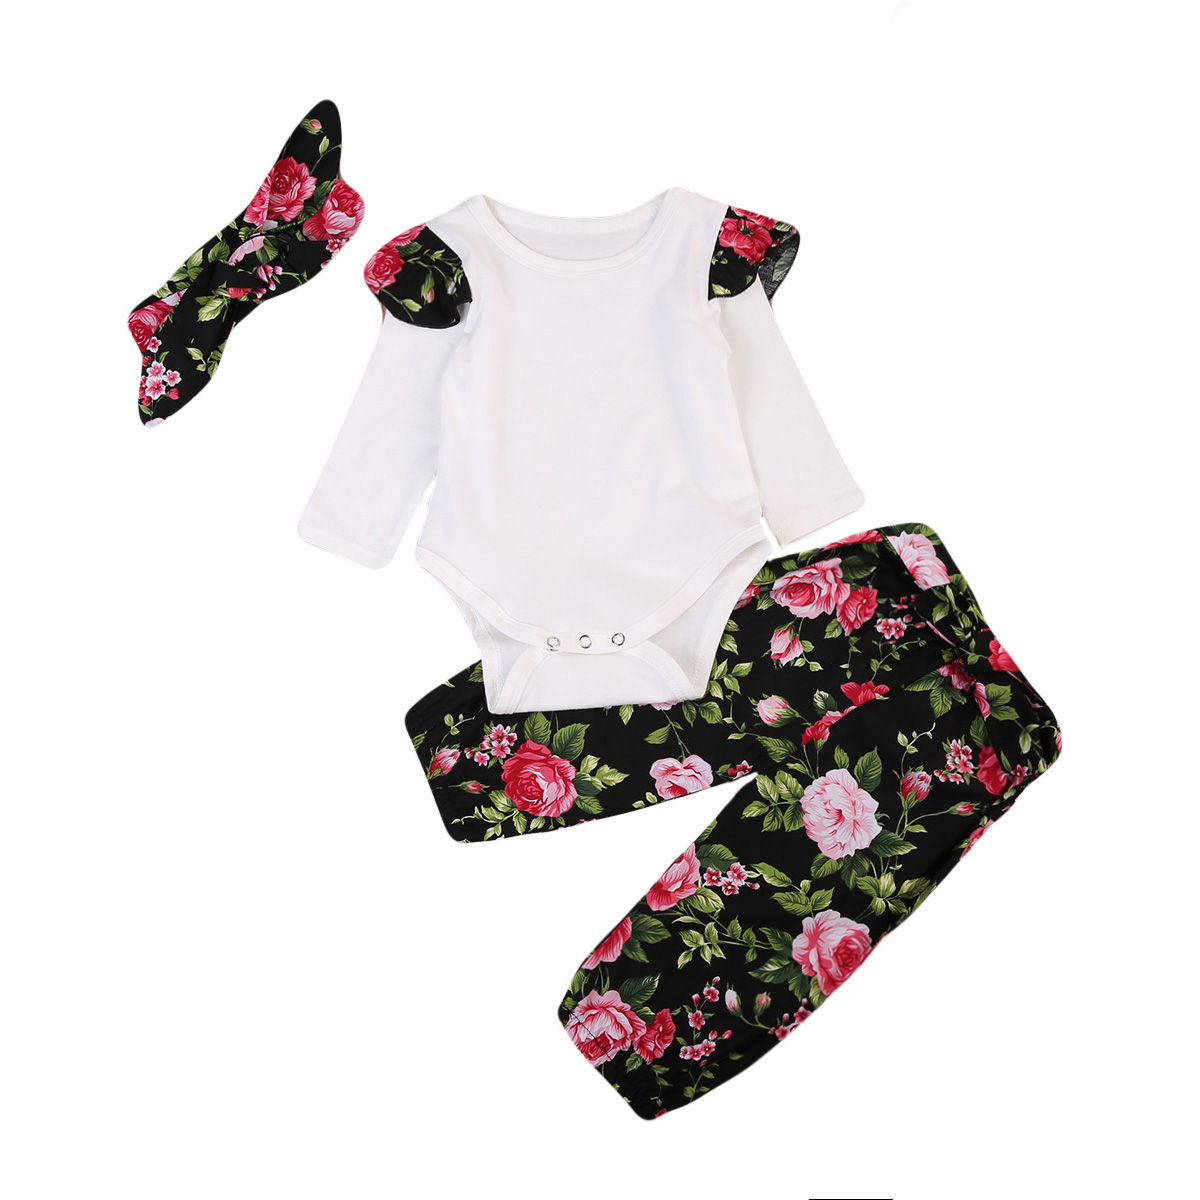 Pudcoco Adorable Newborn Baby Girl Tops Clothes Set Romper Floral Pants Headband 3pcs Casual Autumn Outfits Set Clothes 3pcs floral clothing set 2017 newborn baby girl lace romper bodysuit tops flower pant trouser headband outfits children clothes